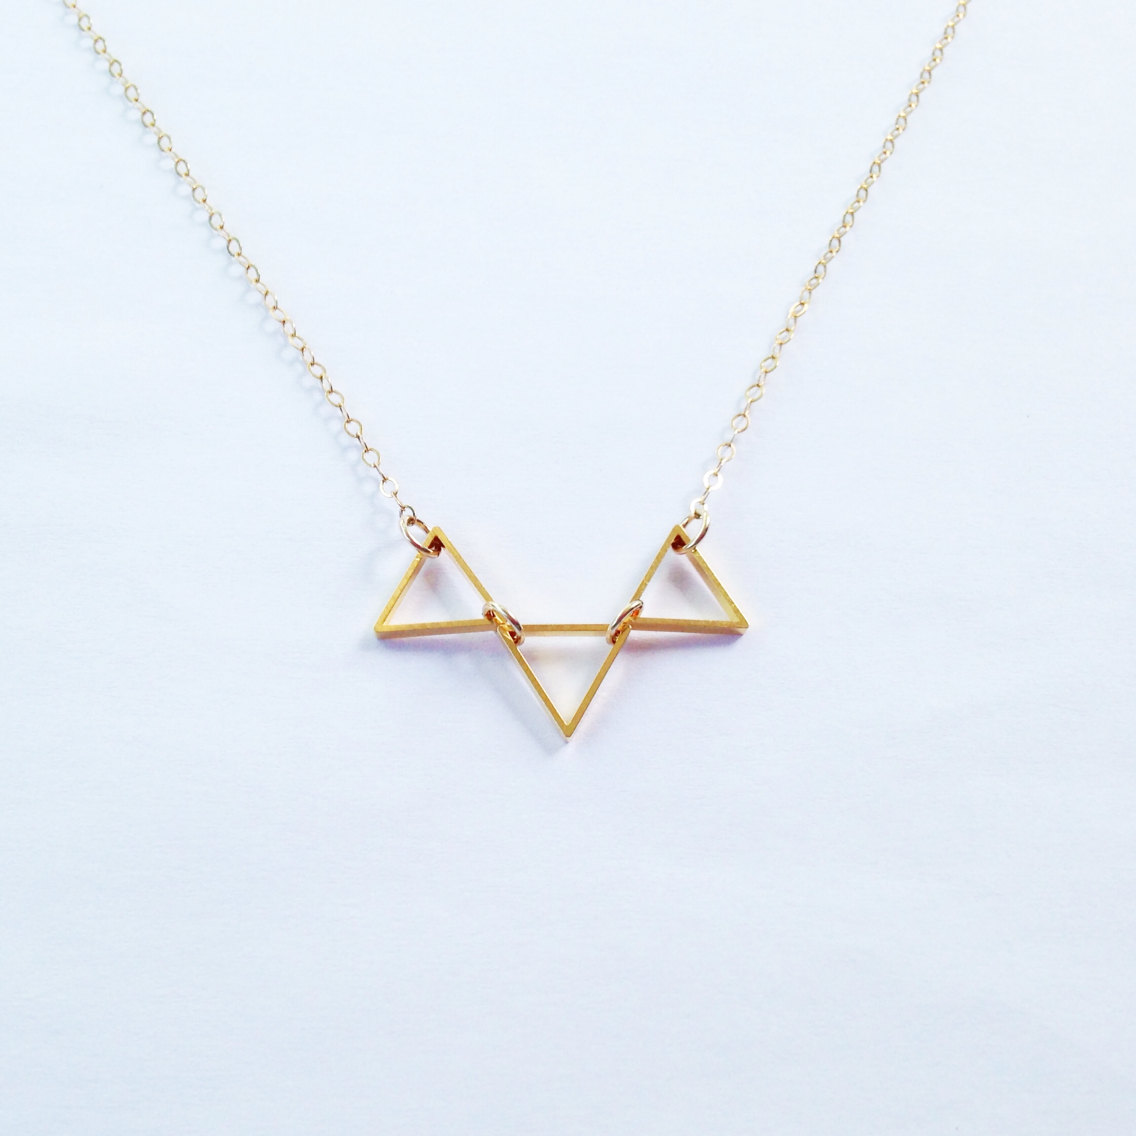 Trinity - Minimalist Trio Necklace, Minimalist Necklace, Gold Triangle, Simple Necklace